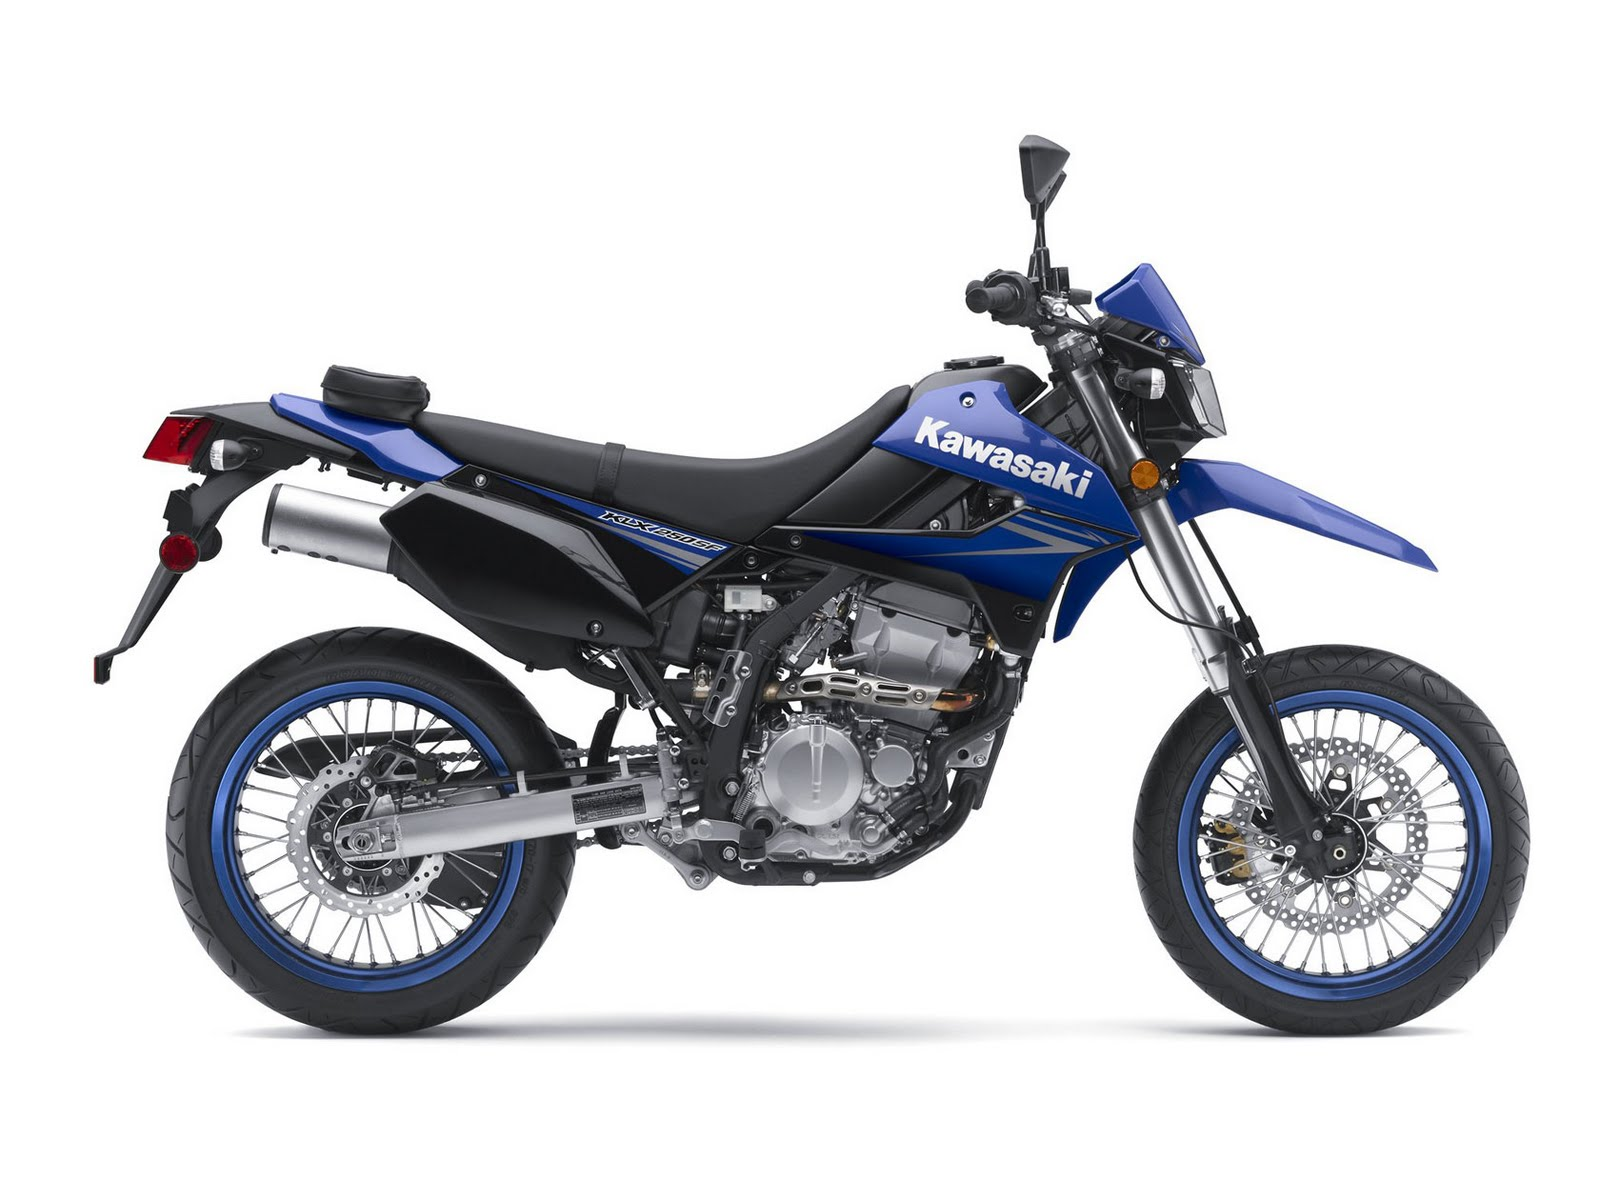 Top Motorcycle: 2010 Kawasaki KLX250SF